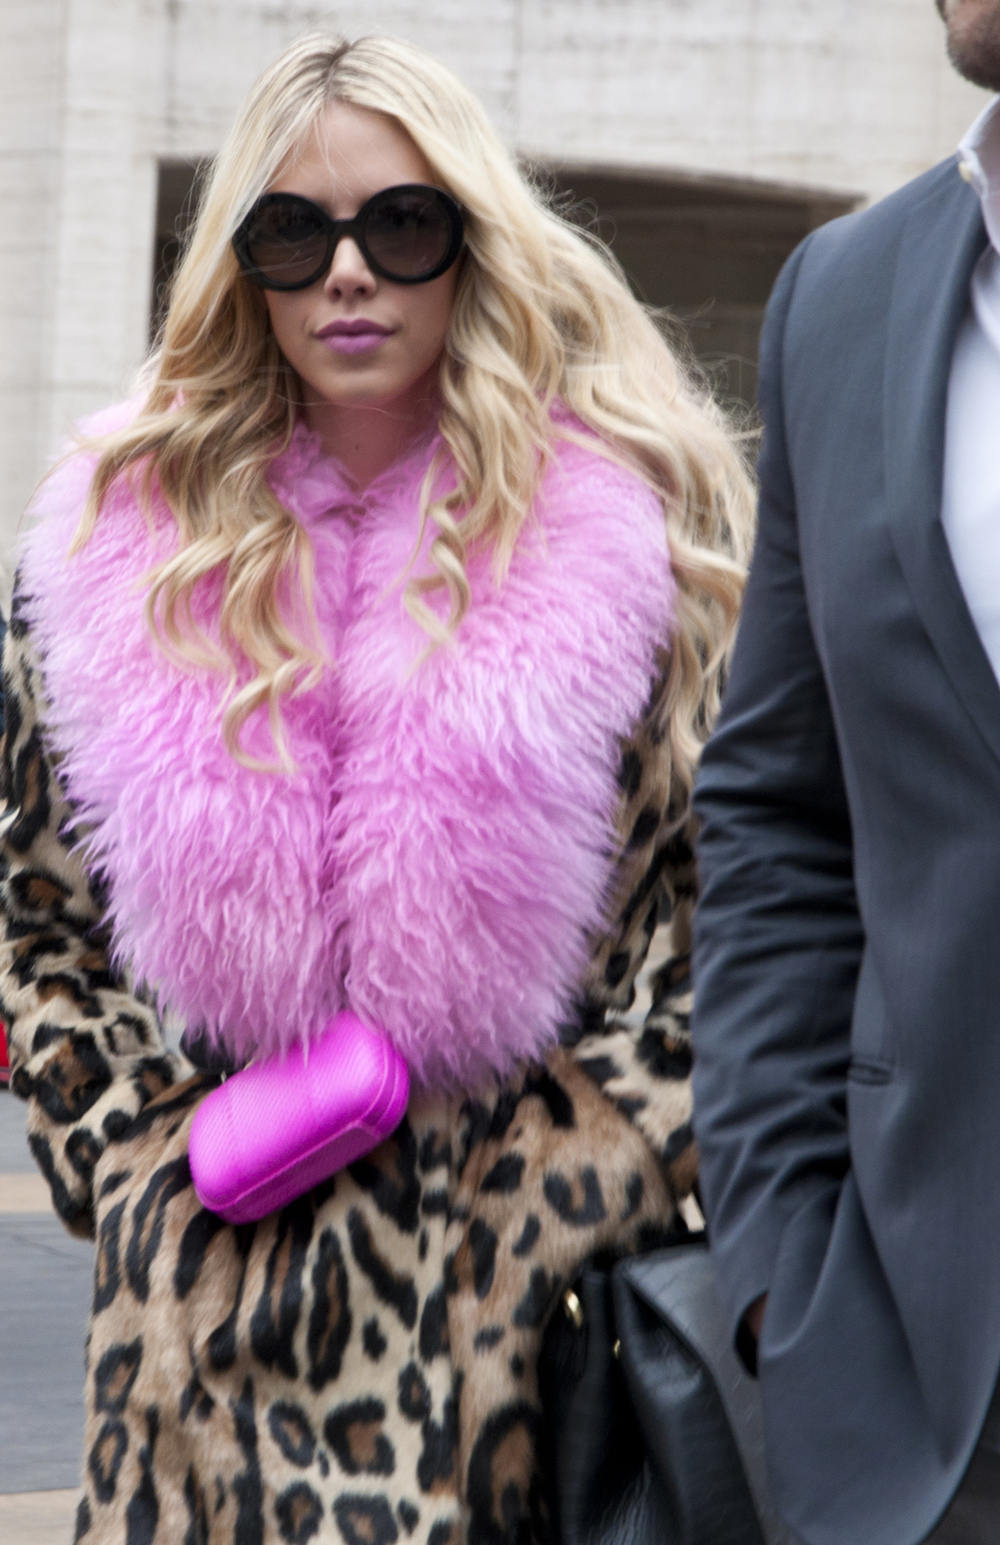 Kier Mellour wearing DVF - hot pink contrasting with cheetah print